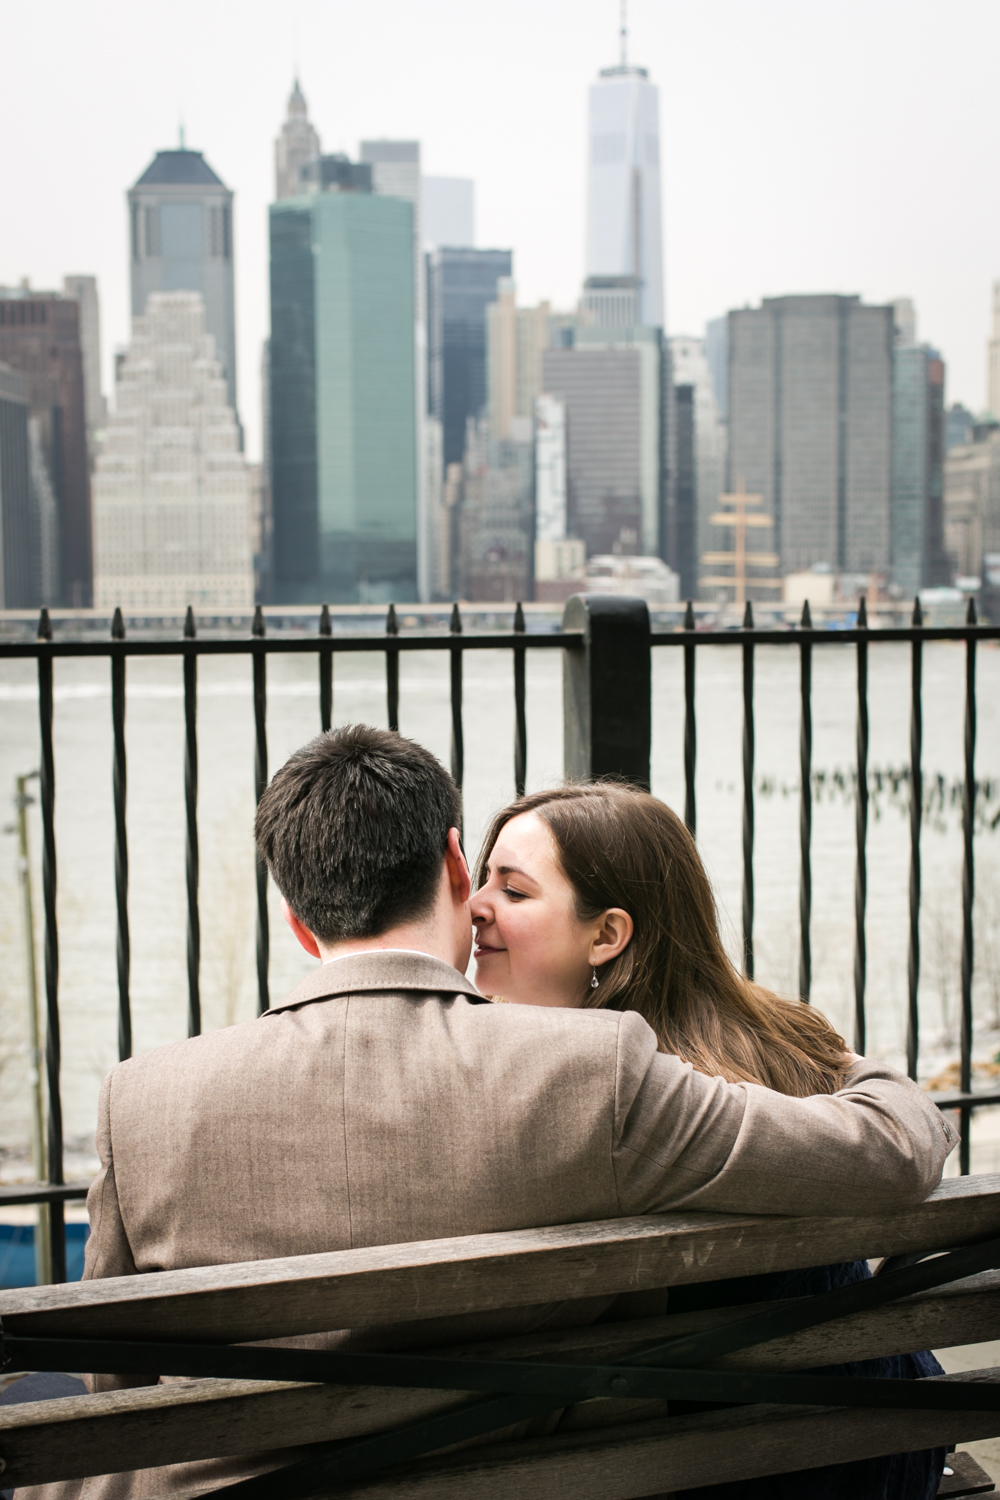 Couple sitting on bench on Brooklyn Promenade and woman kissing man on cheek